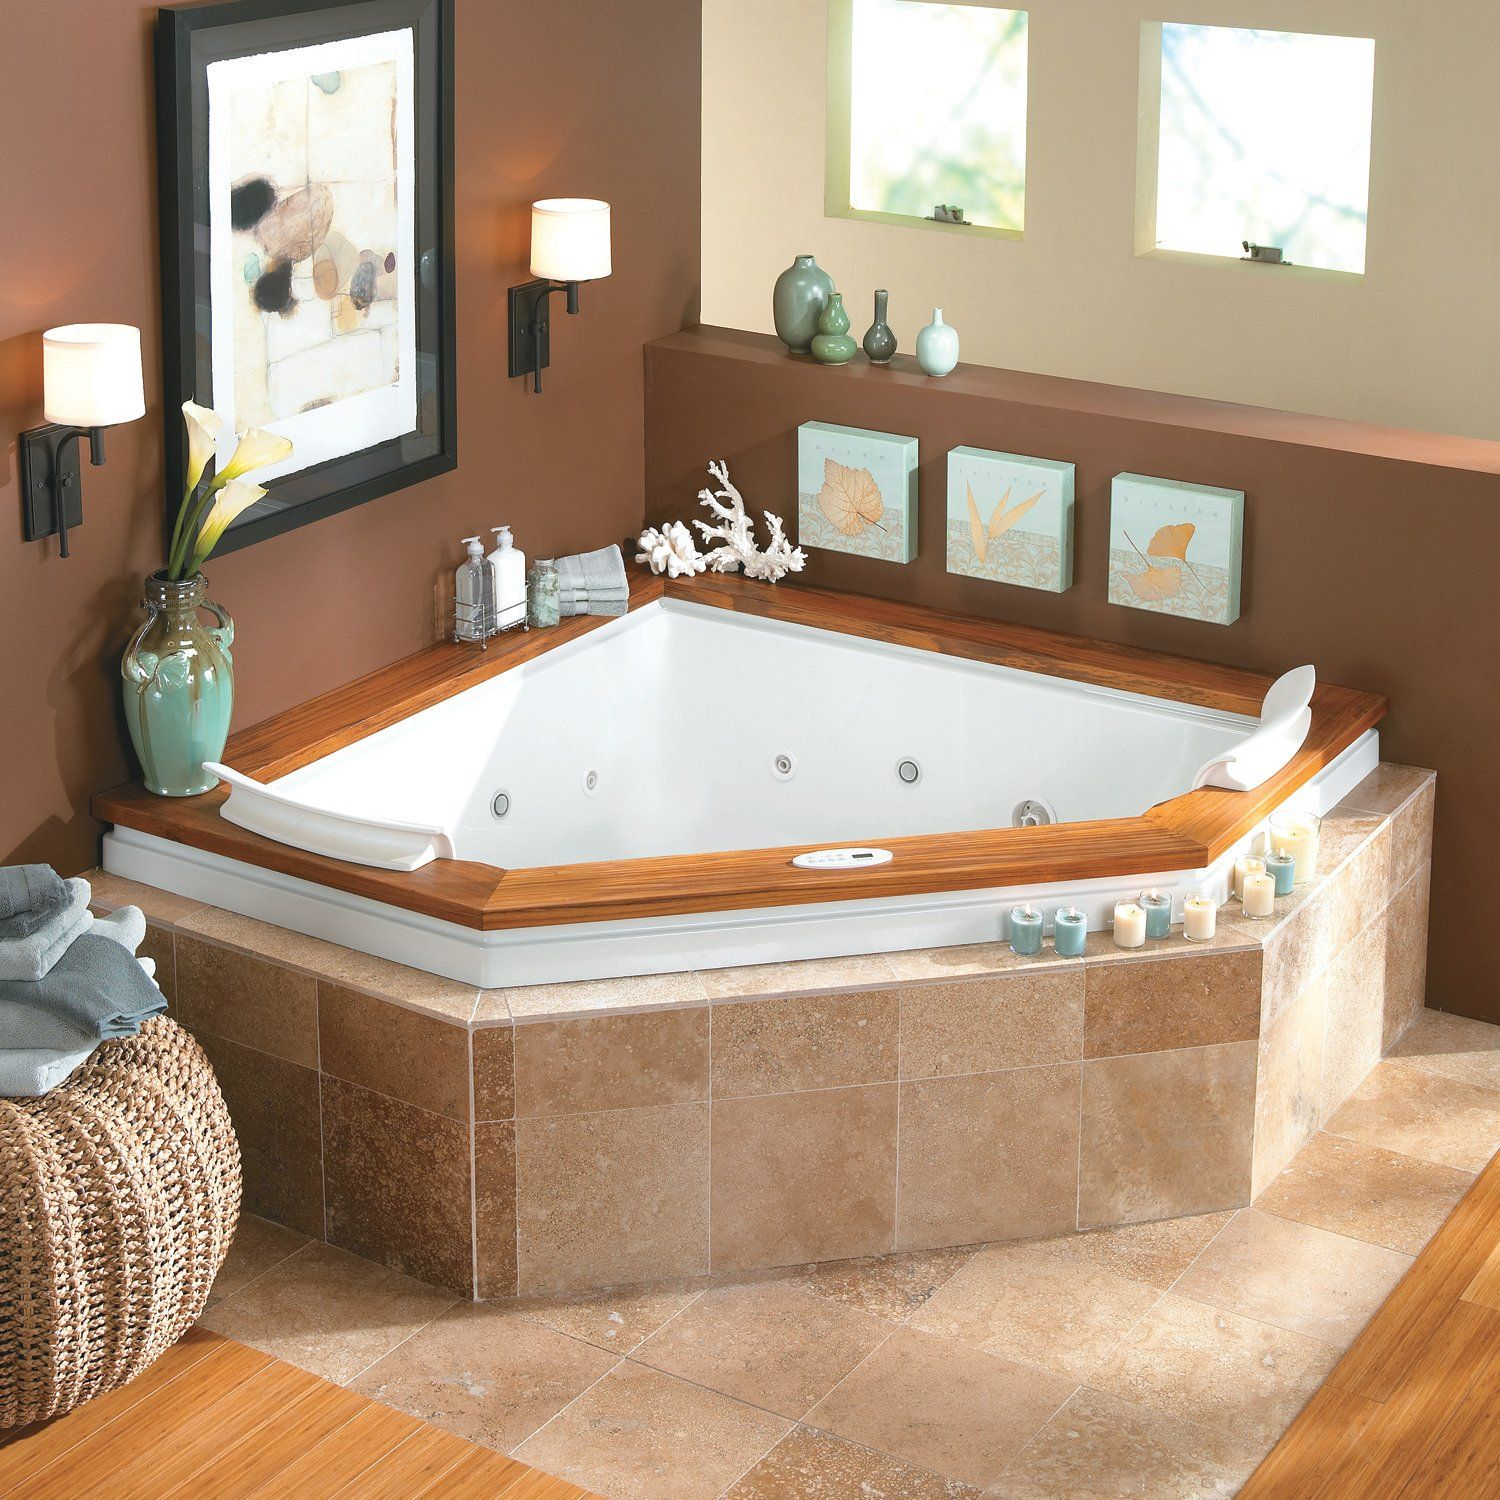 Bathroom Captivating Small Jacuzzi Bathtubs With Jets In Corner Space Also  Brown Wall Paint Plus. Bathroom Captivating Small Jacuzzi Bathtubs With Jets In Corner